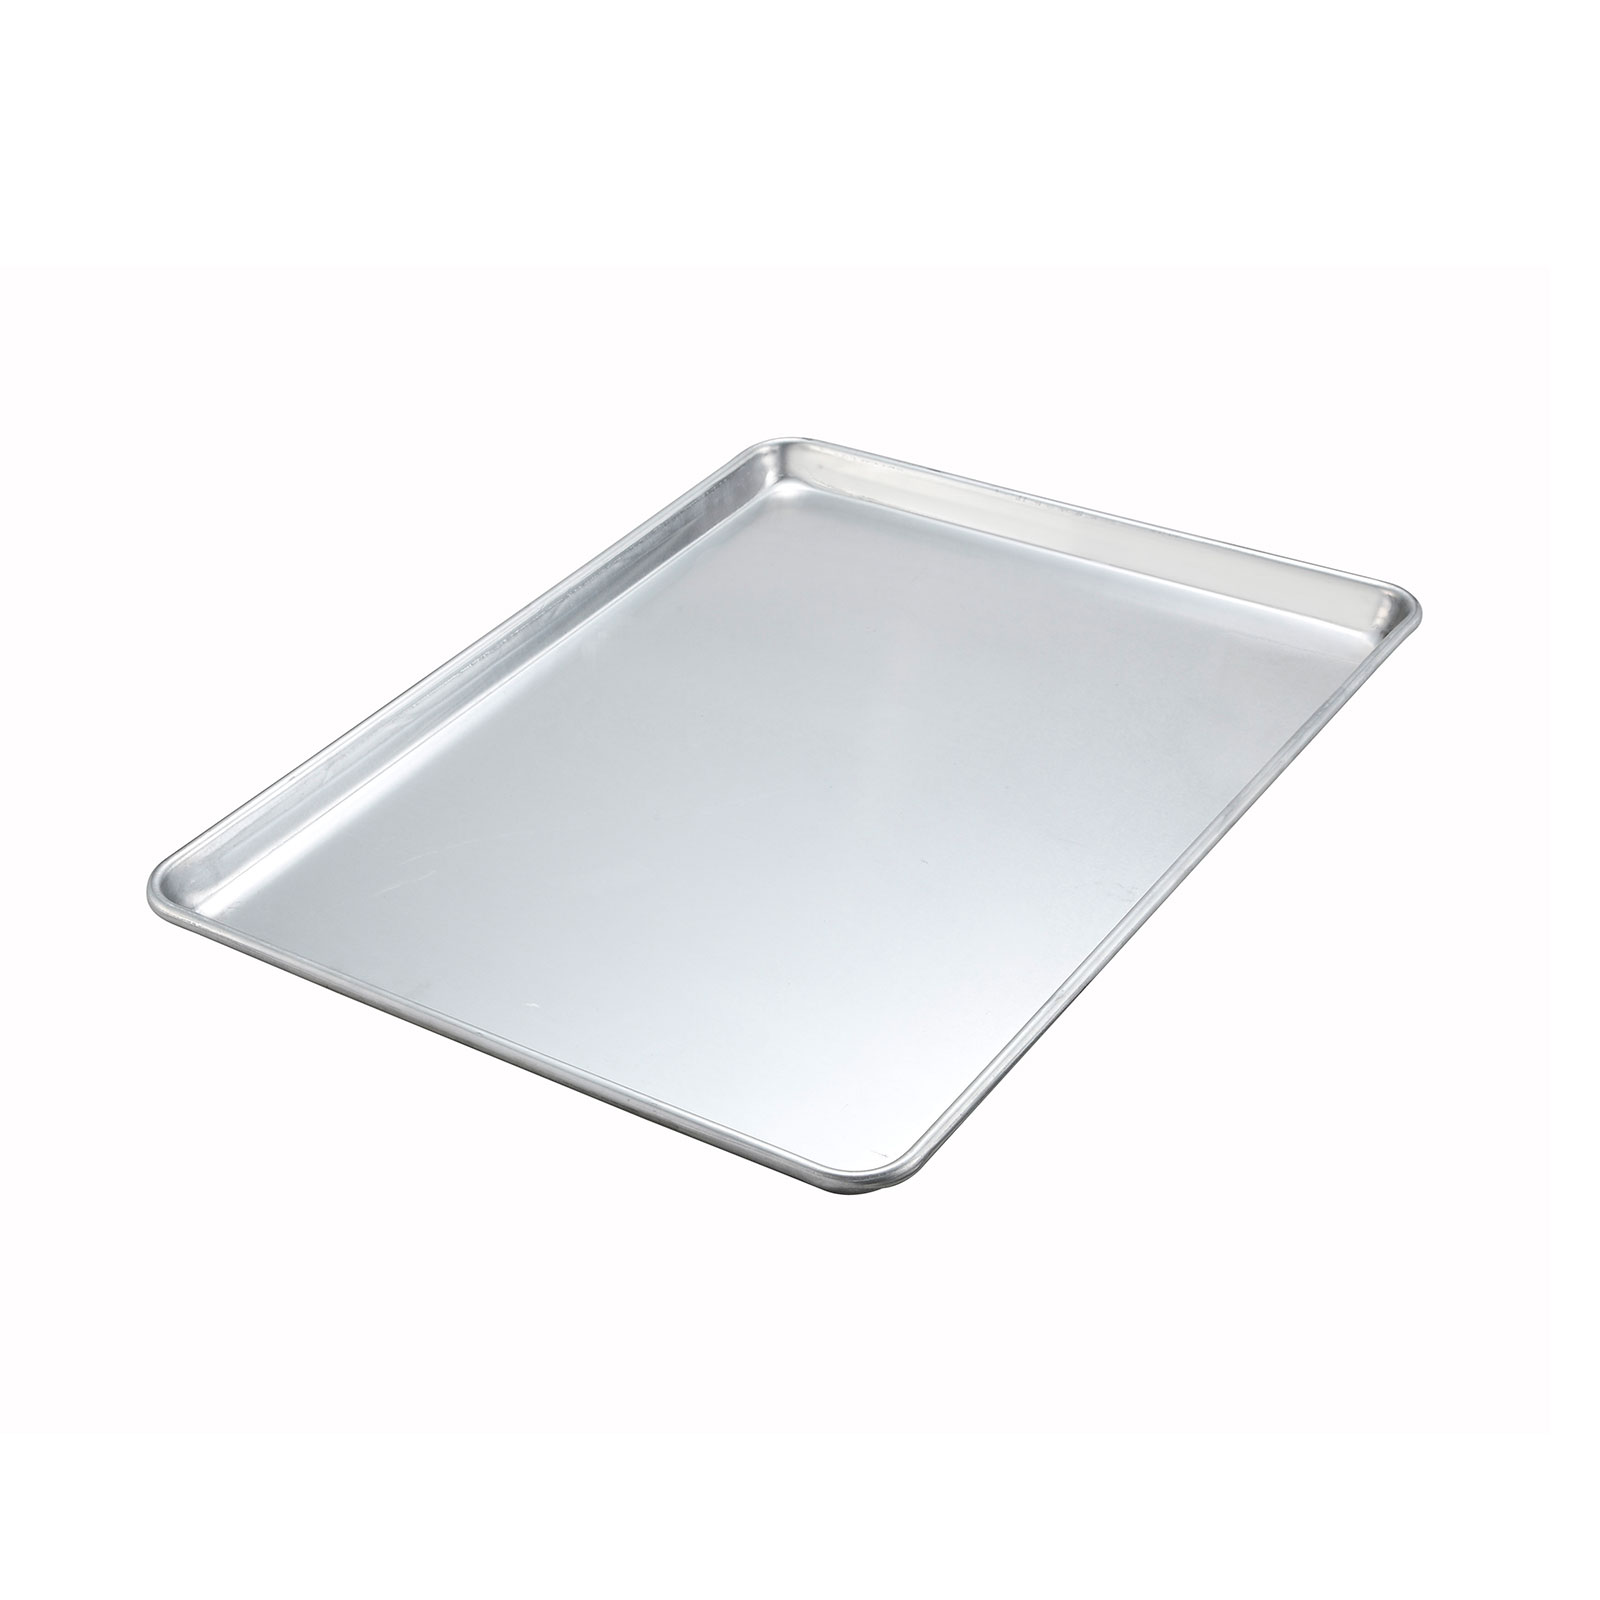 1800-03 Winco ALXP-1622 bun / sheet pan